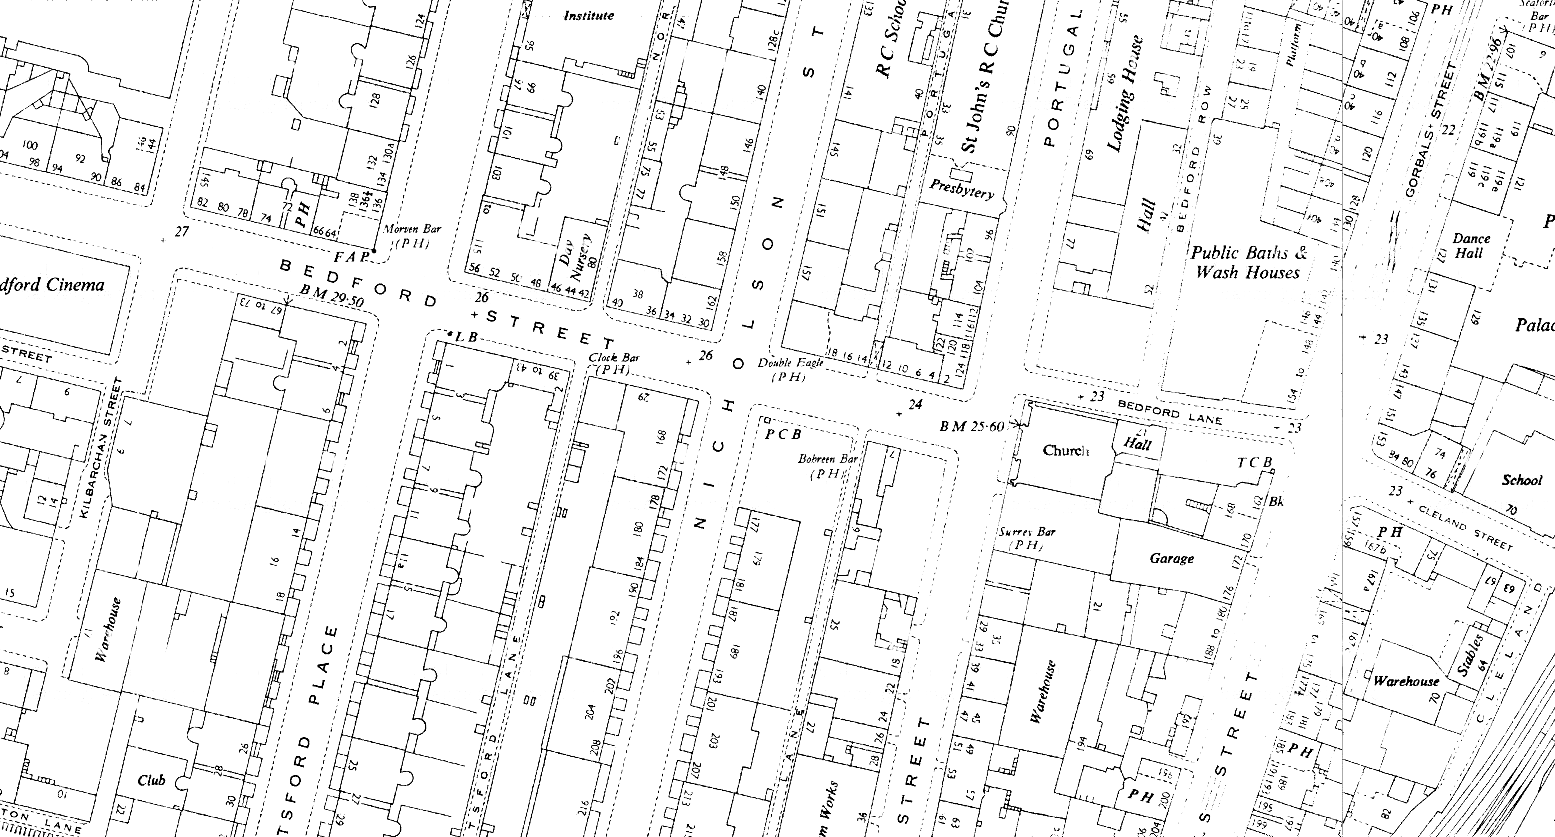 D2--Bedford Street at Nicholson Street-Apsley Place--1953 OS map Extract 1-1250.png